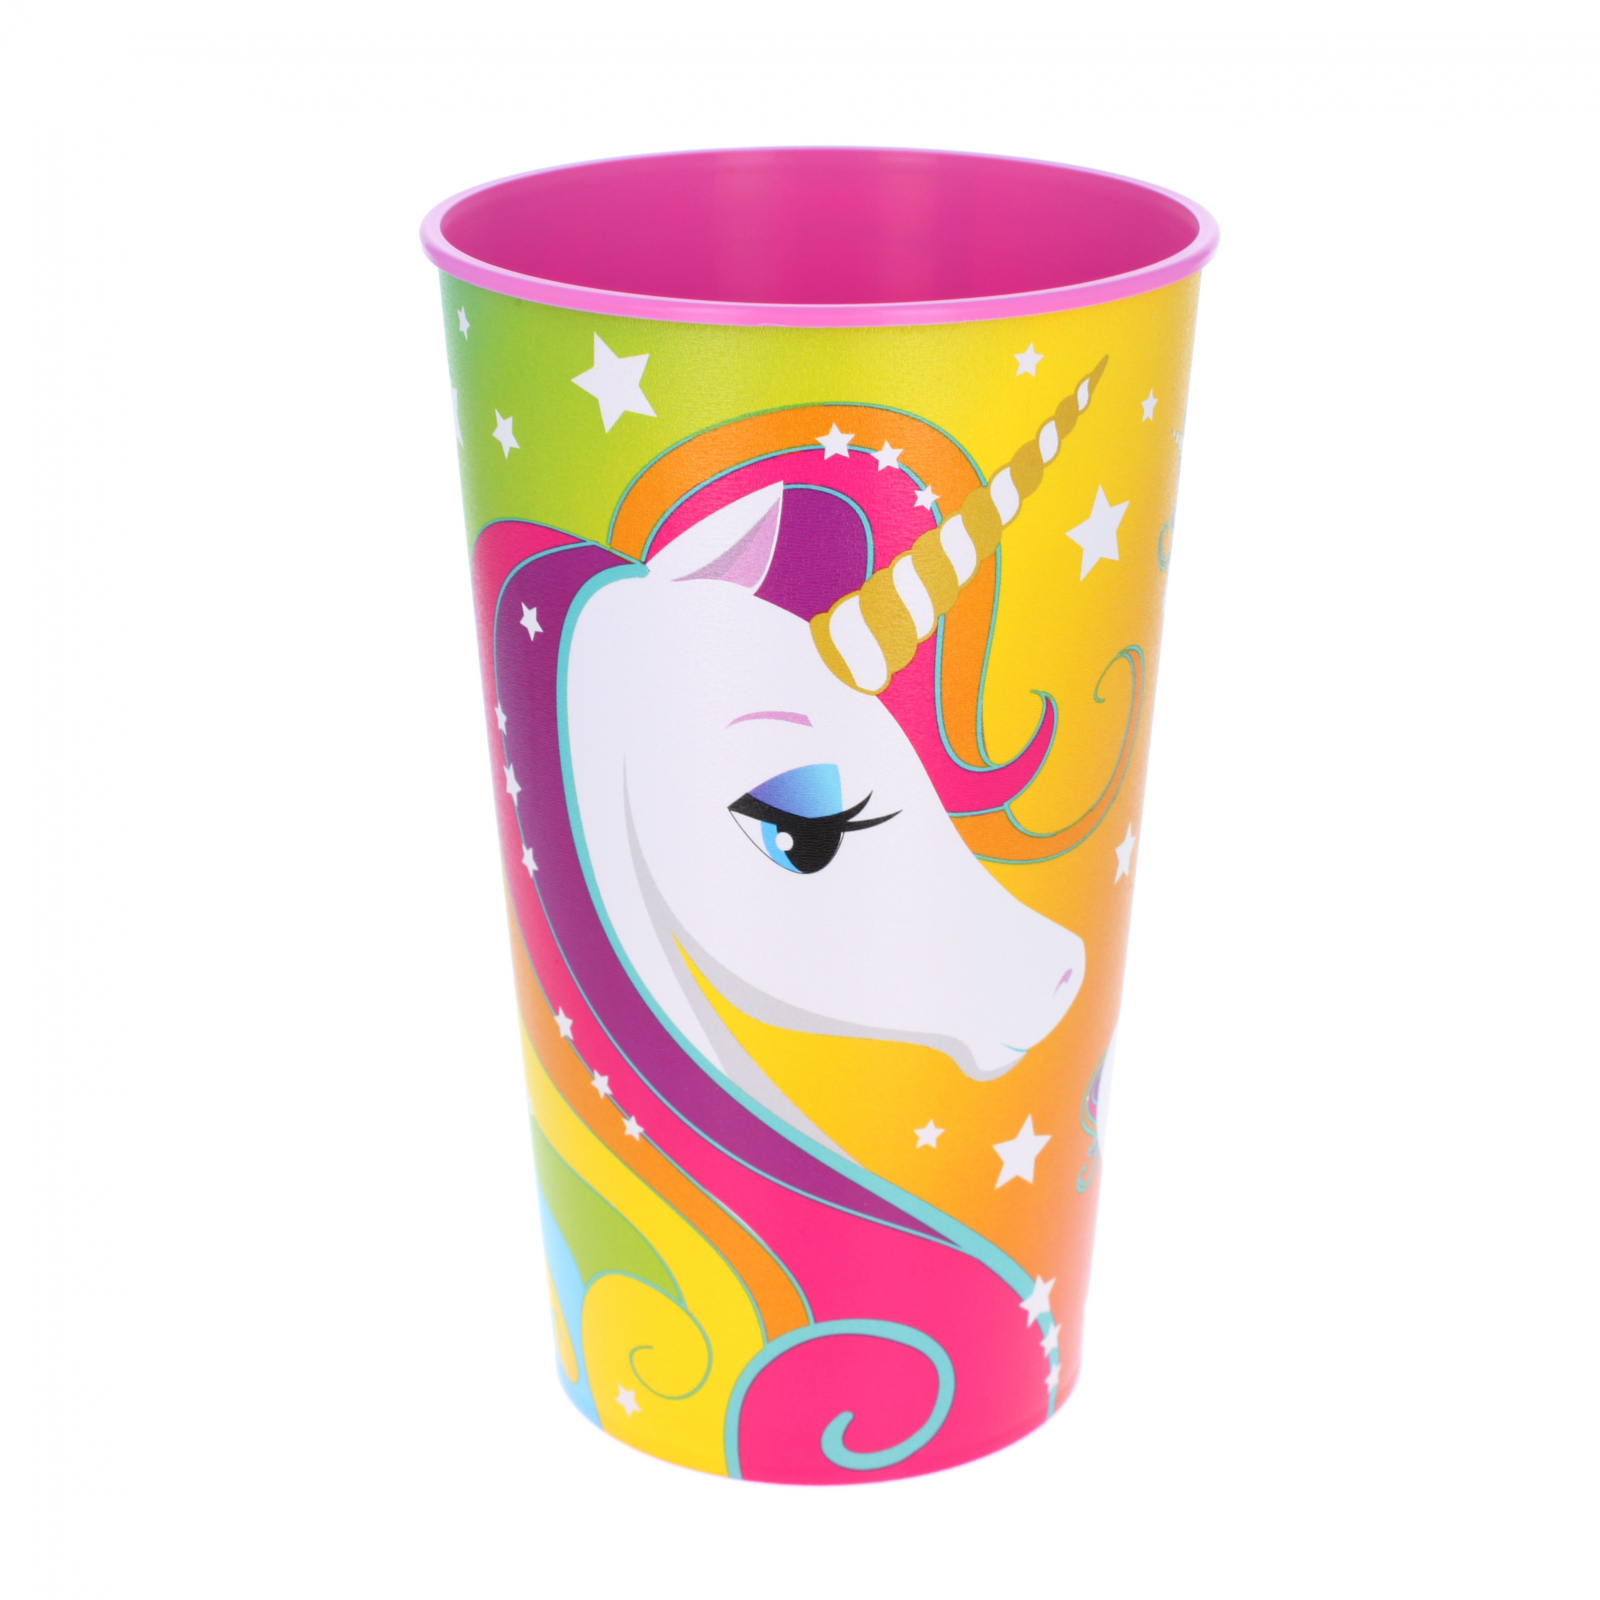 Magical Unicorn Kids Plastic Drinking Cup Large 22oz